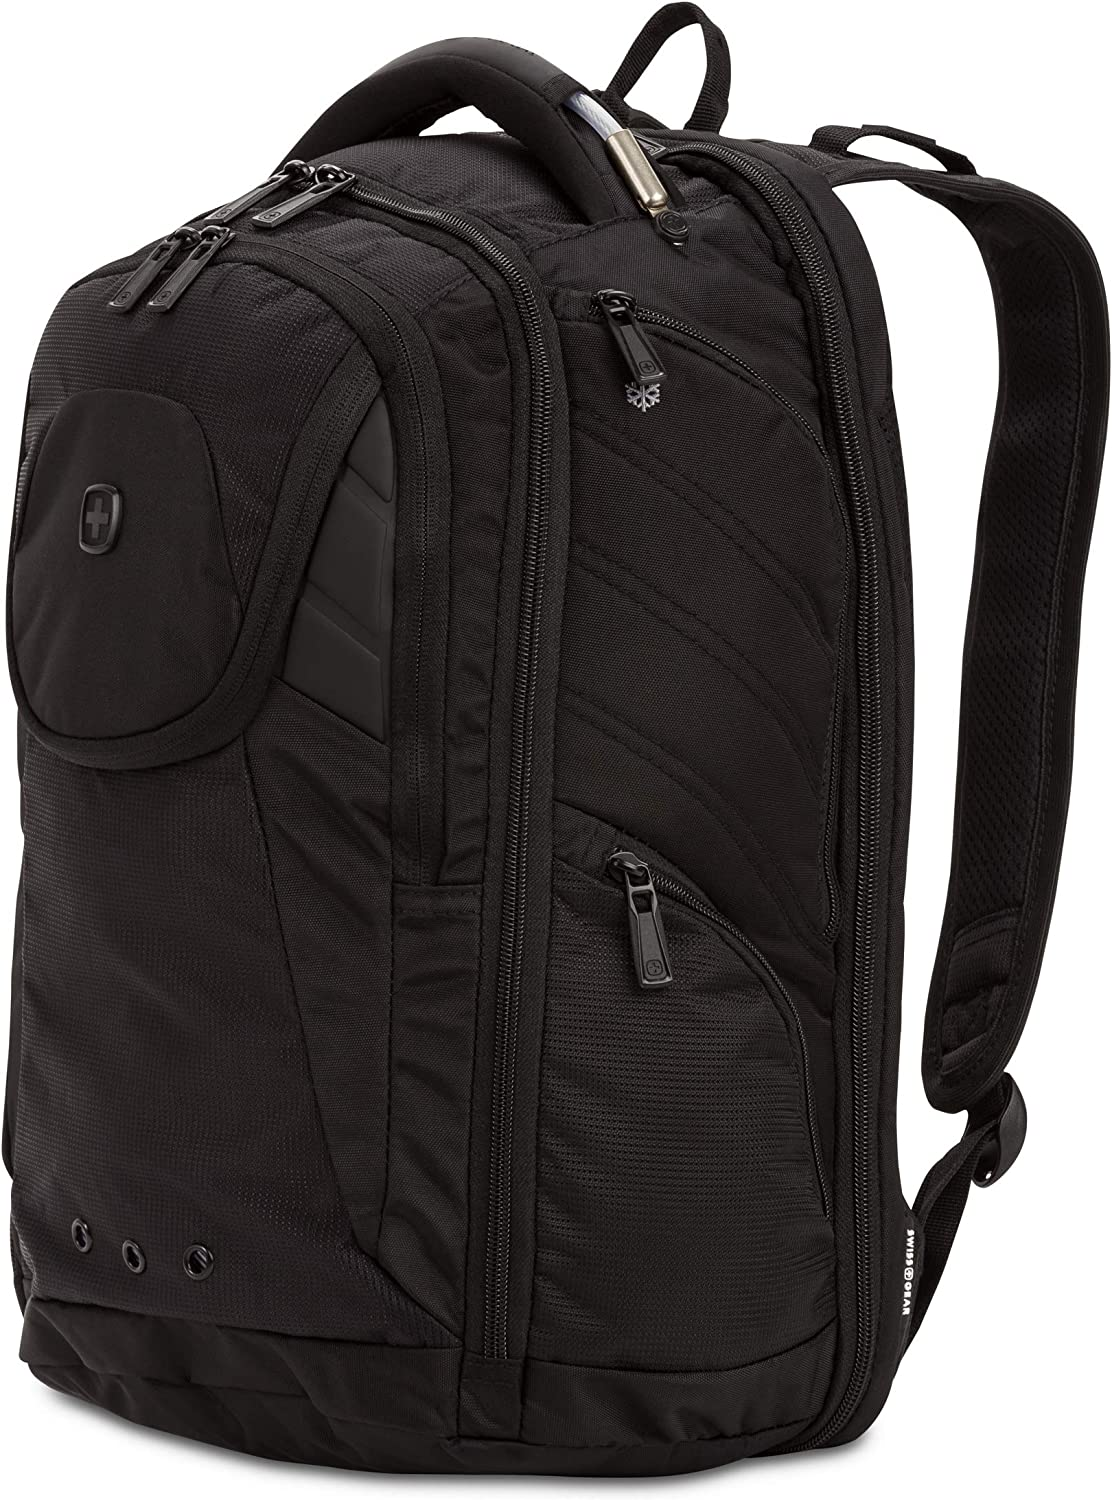 SwissGear 2762 ScanSmart Laptop Backpack. Abrasion-Resistant & Travel-Friendly Laptop Backpack (Monochrome Black)